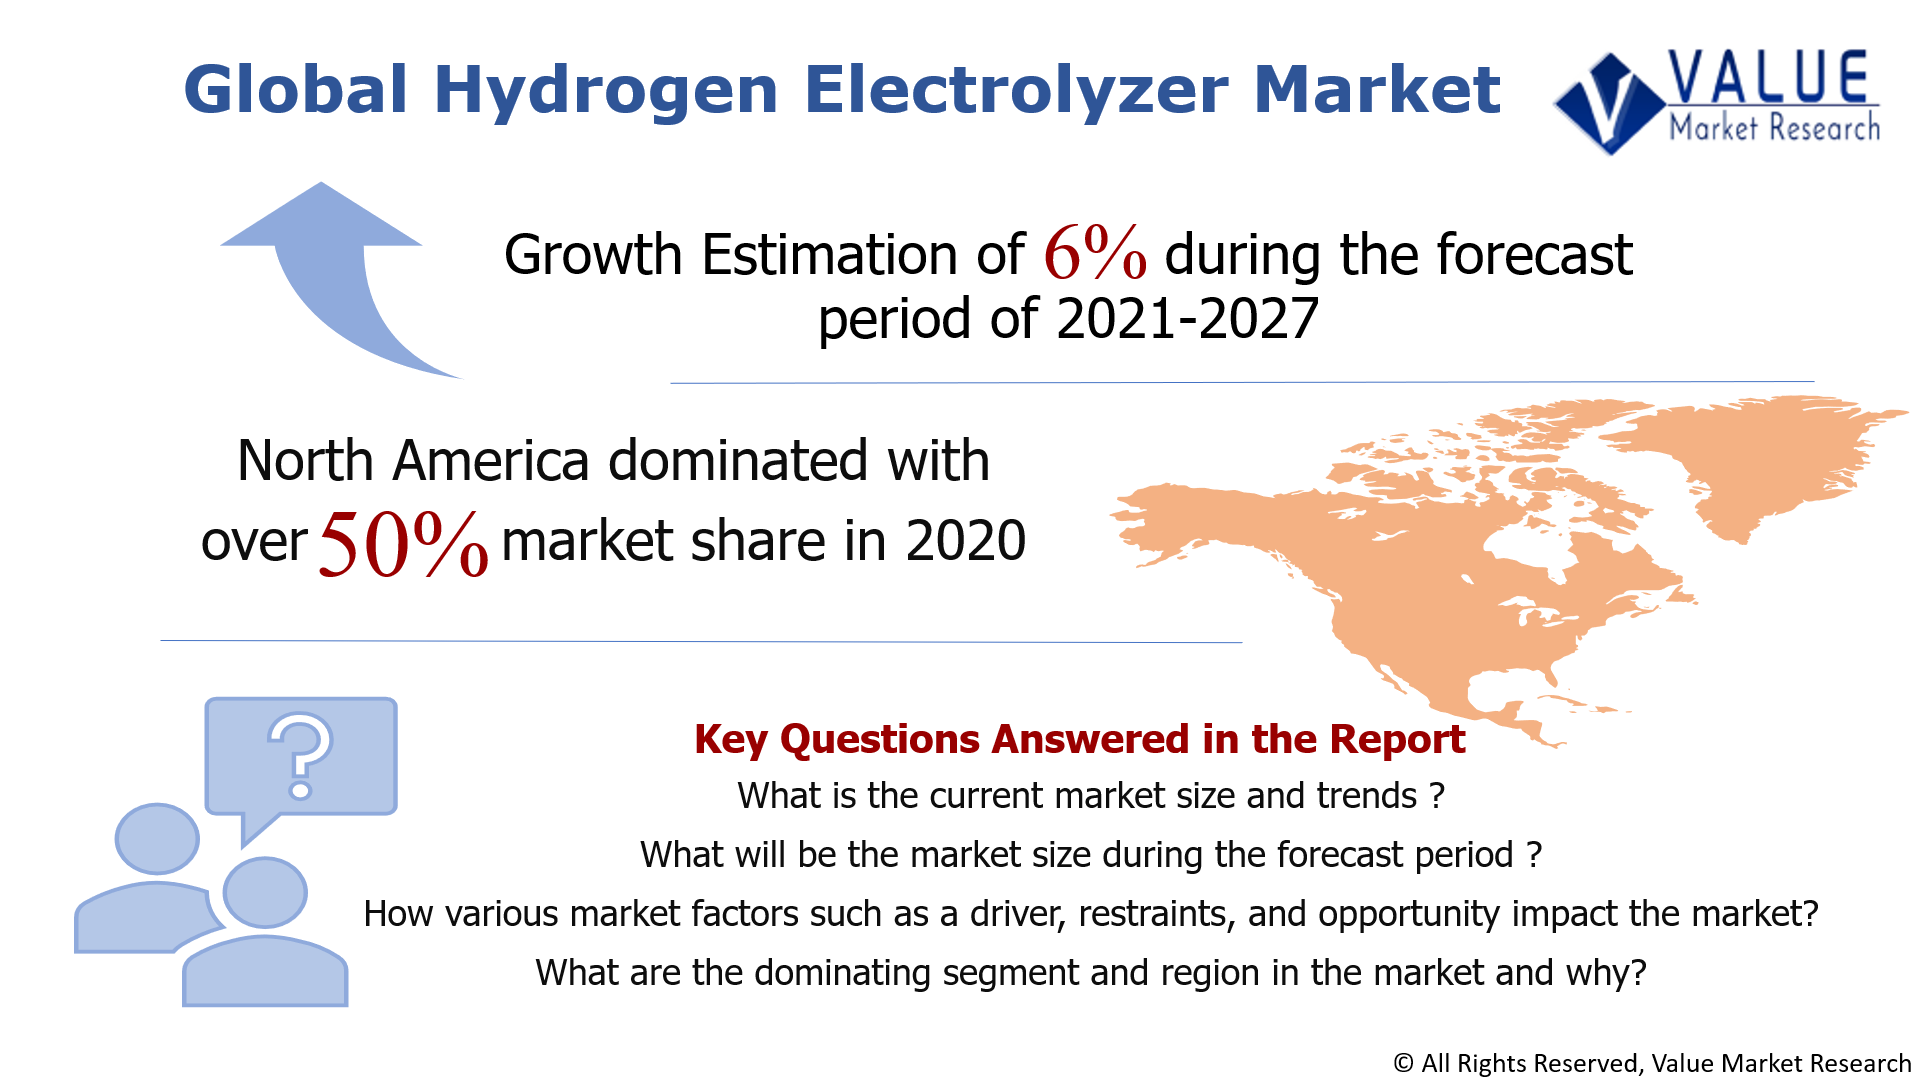 Global Hydrogen Electrolyzer Market Share